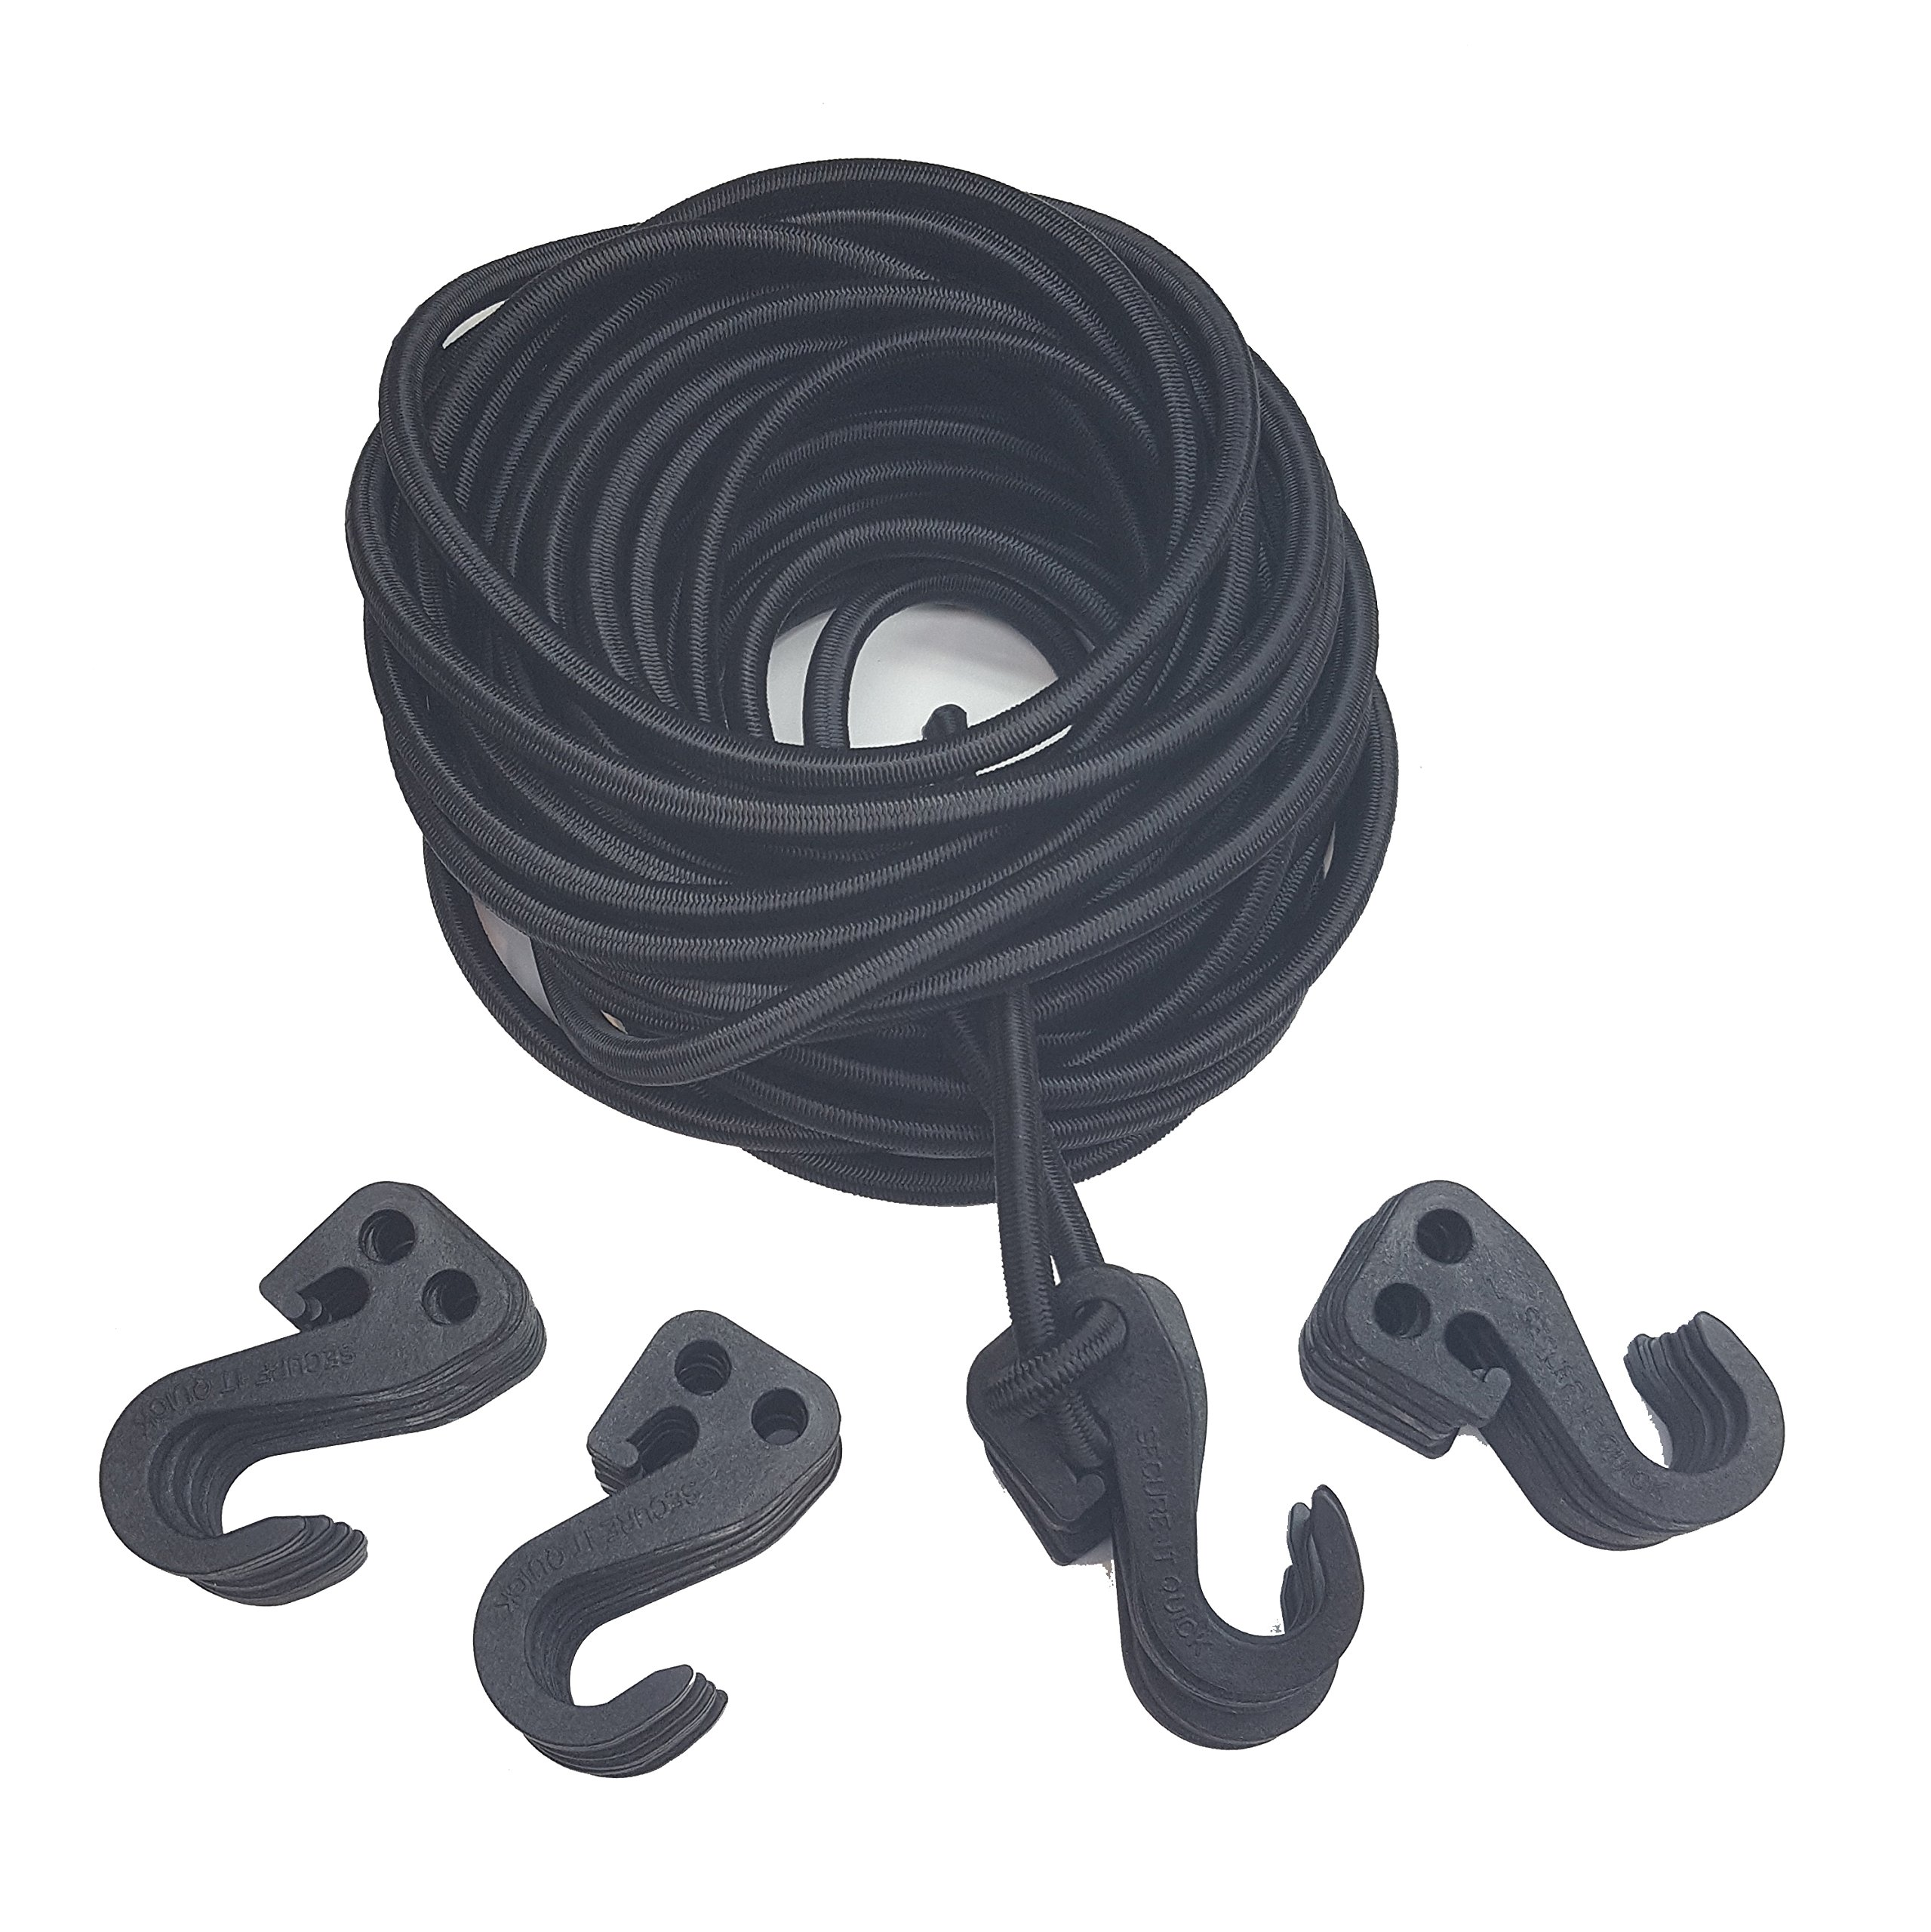 Secure IT Quick - 3/8'' Bungee Cord Kit 50' with 24 Adjustable SIQCN Hooks''No Crimps Needed'' (Black)